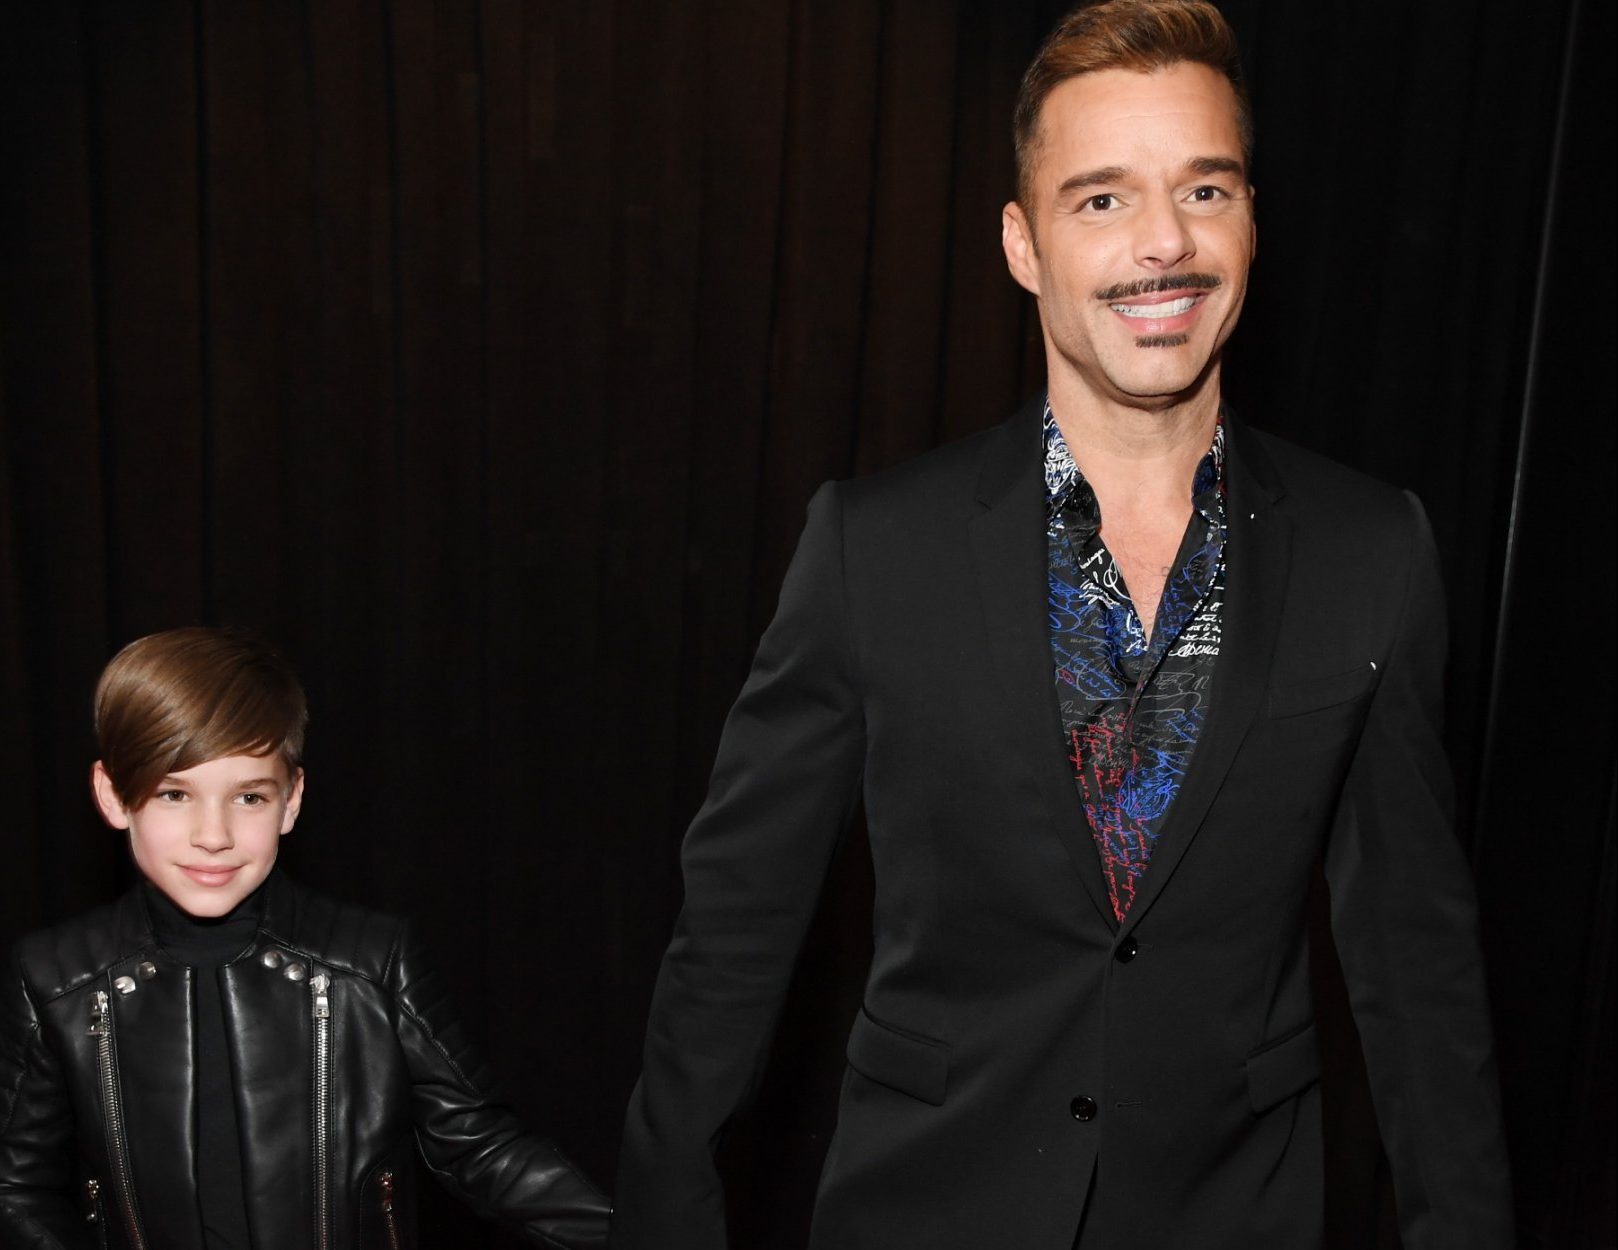 Grammys 2019: Ricky Martin takes his son as his date and it is cute